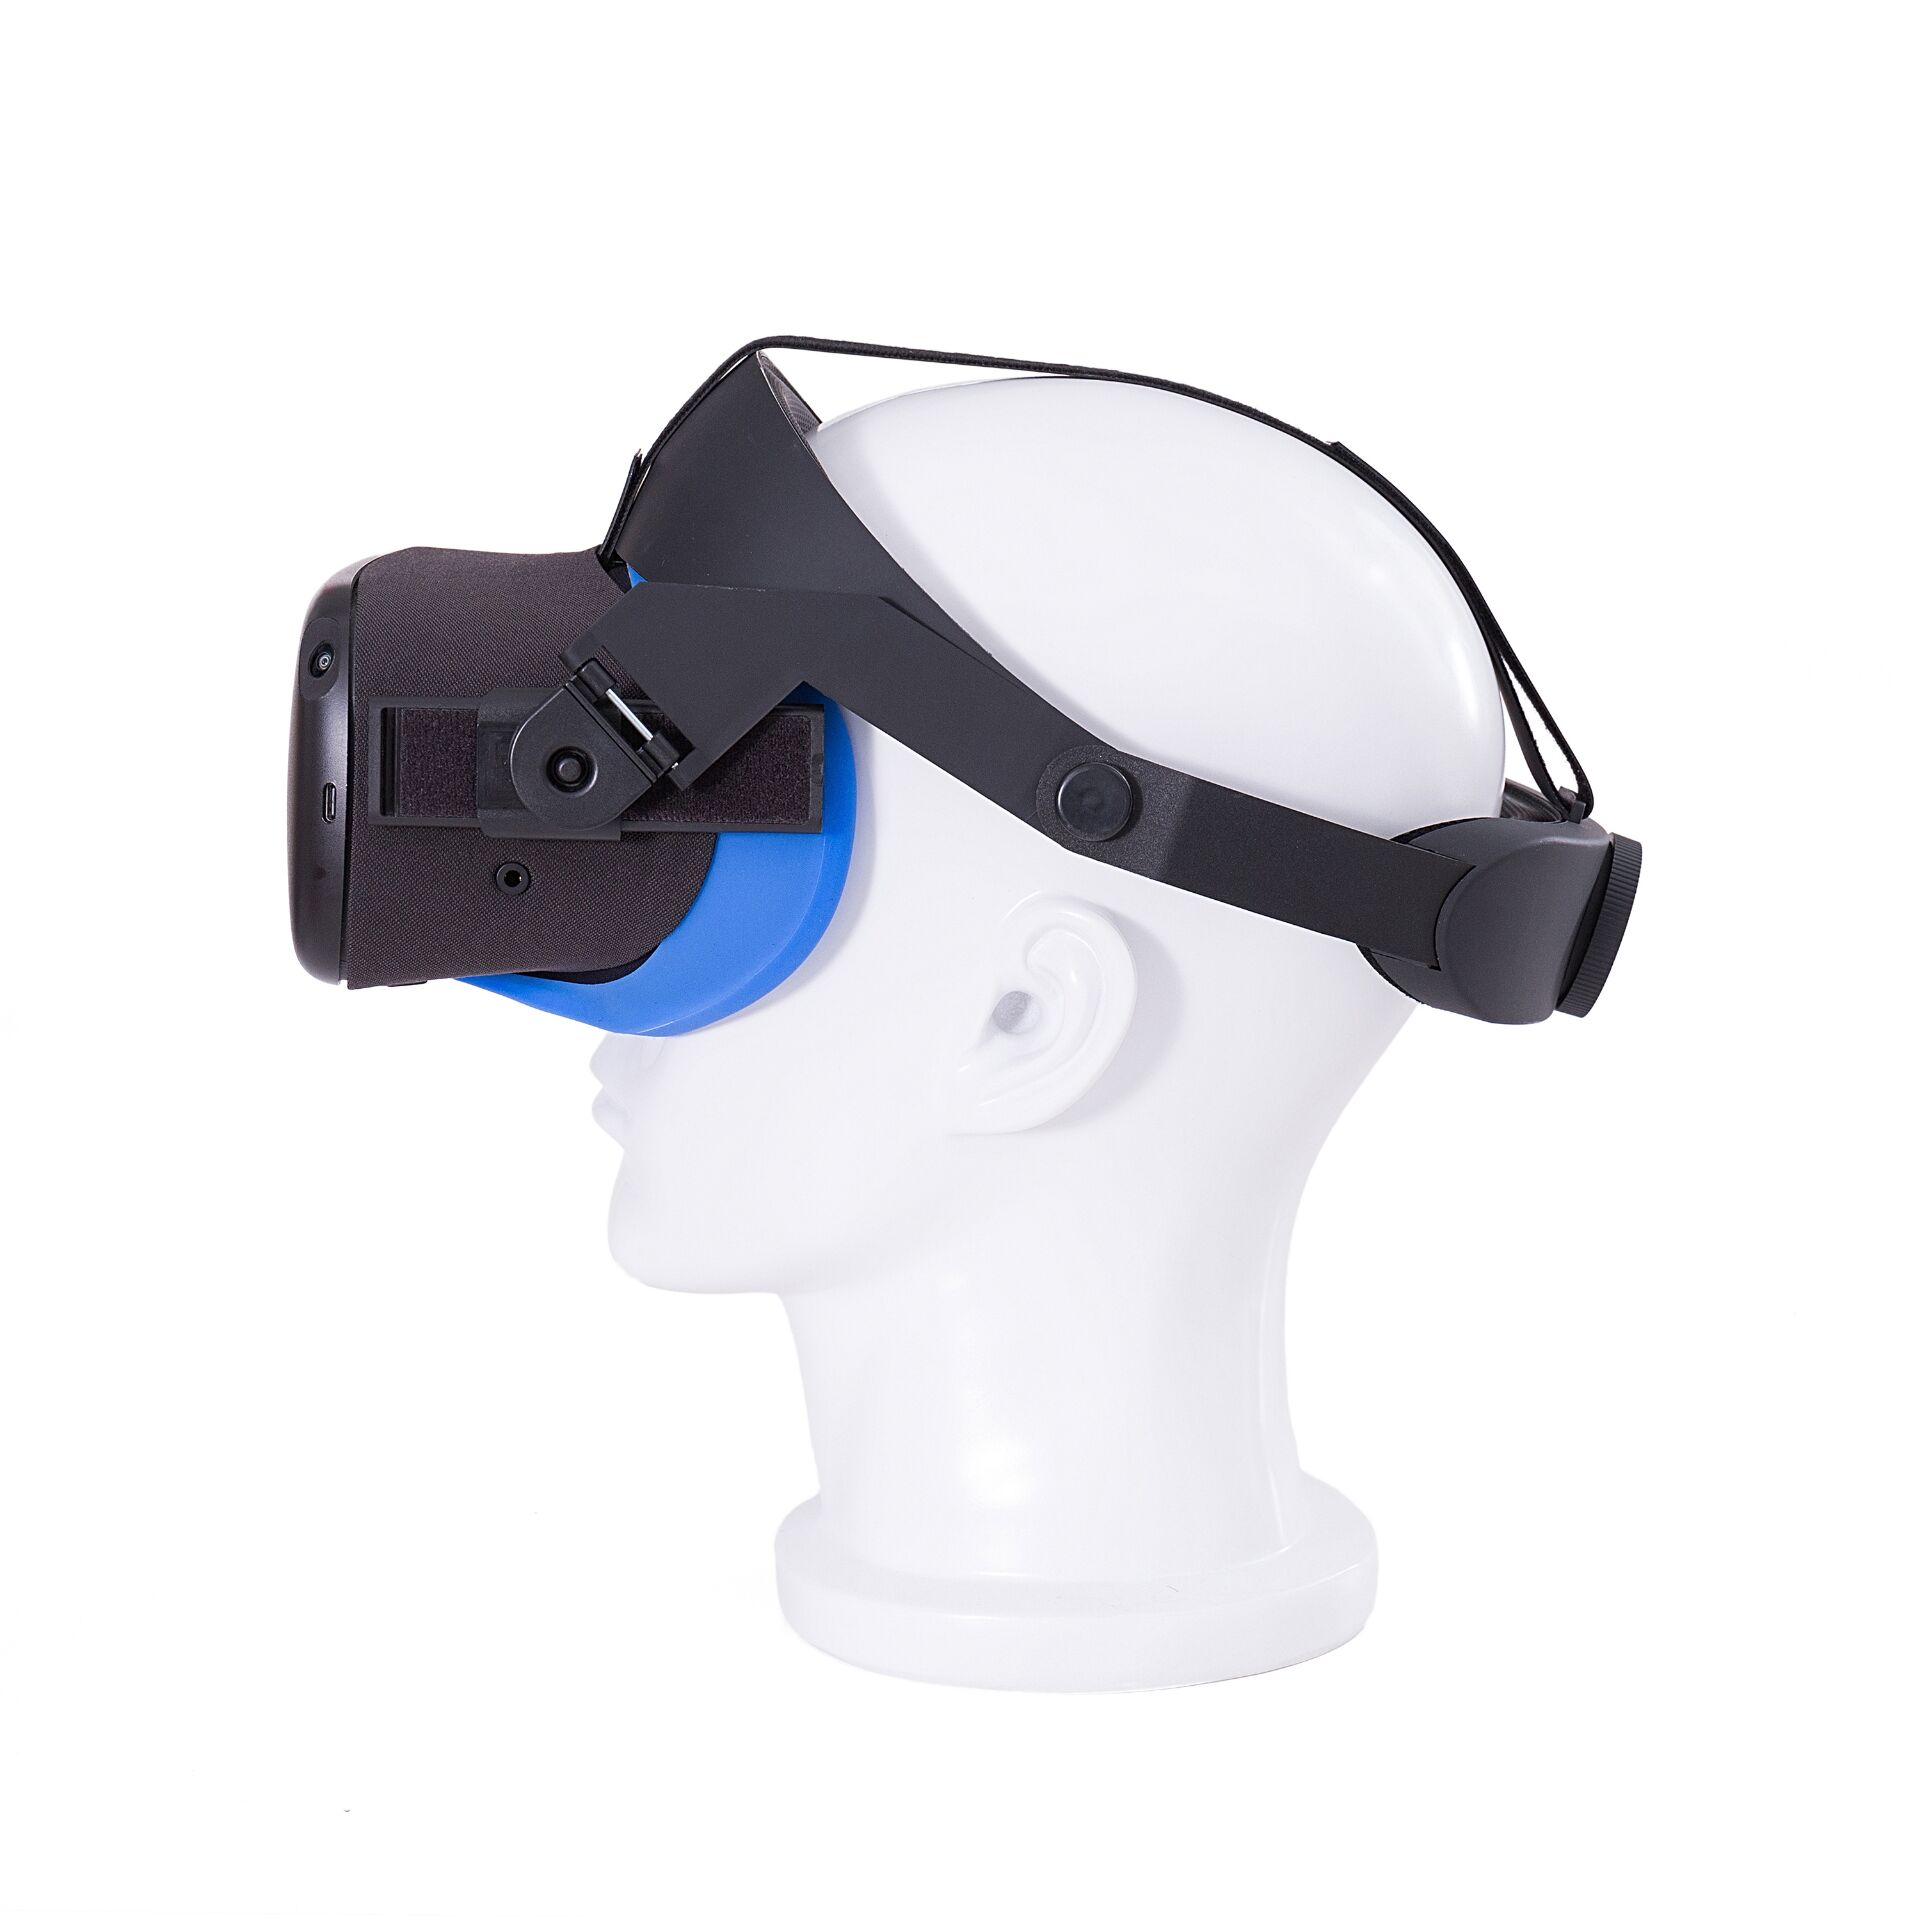 GOMRVR oculus quest halo strap solves the pressure balance of facecomfortable adjustable ergonomic virtual reality accessories